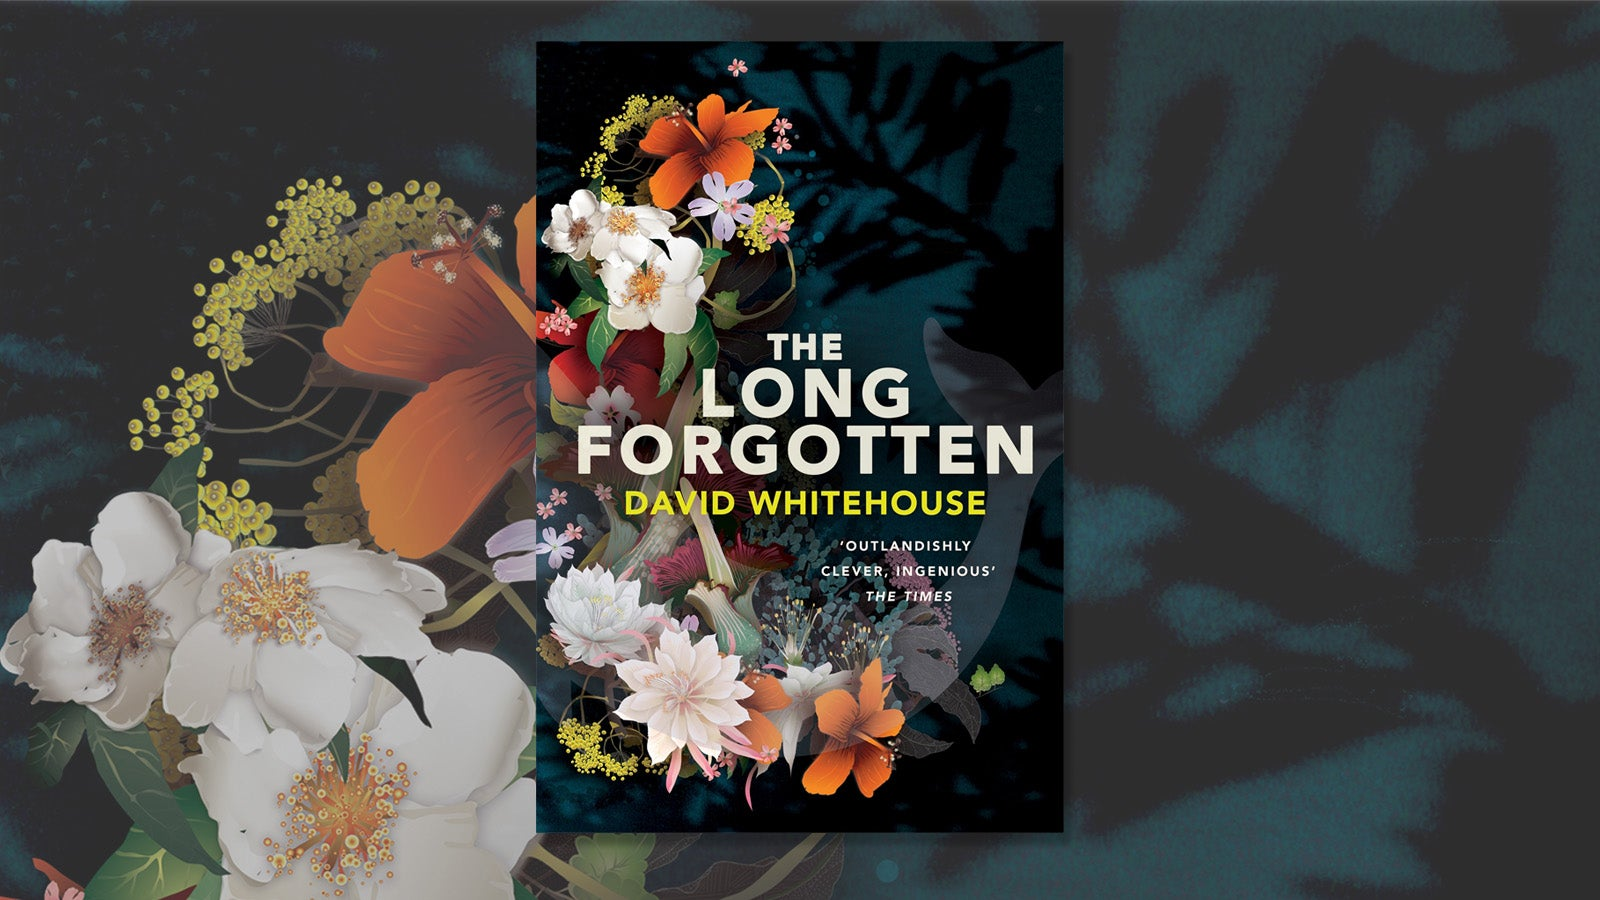 The jacket cover for the book the Long Forgotten by David Whitehouse, depicting orange and white flowers on a dark blue background